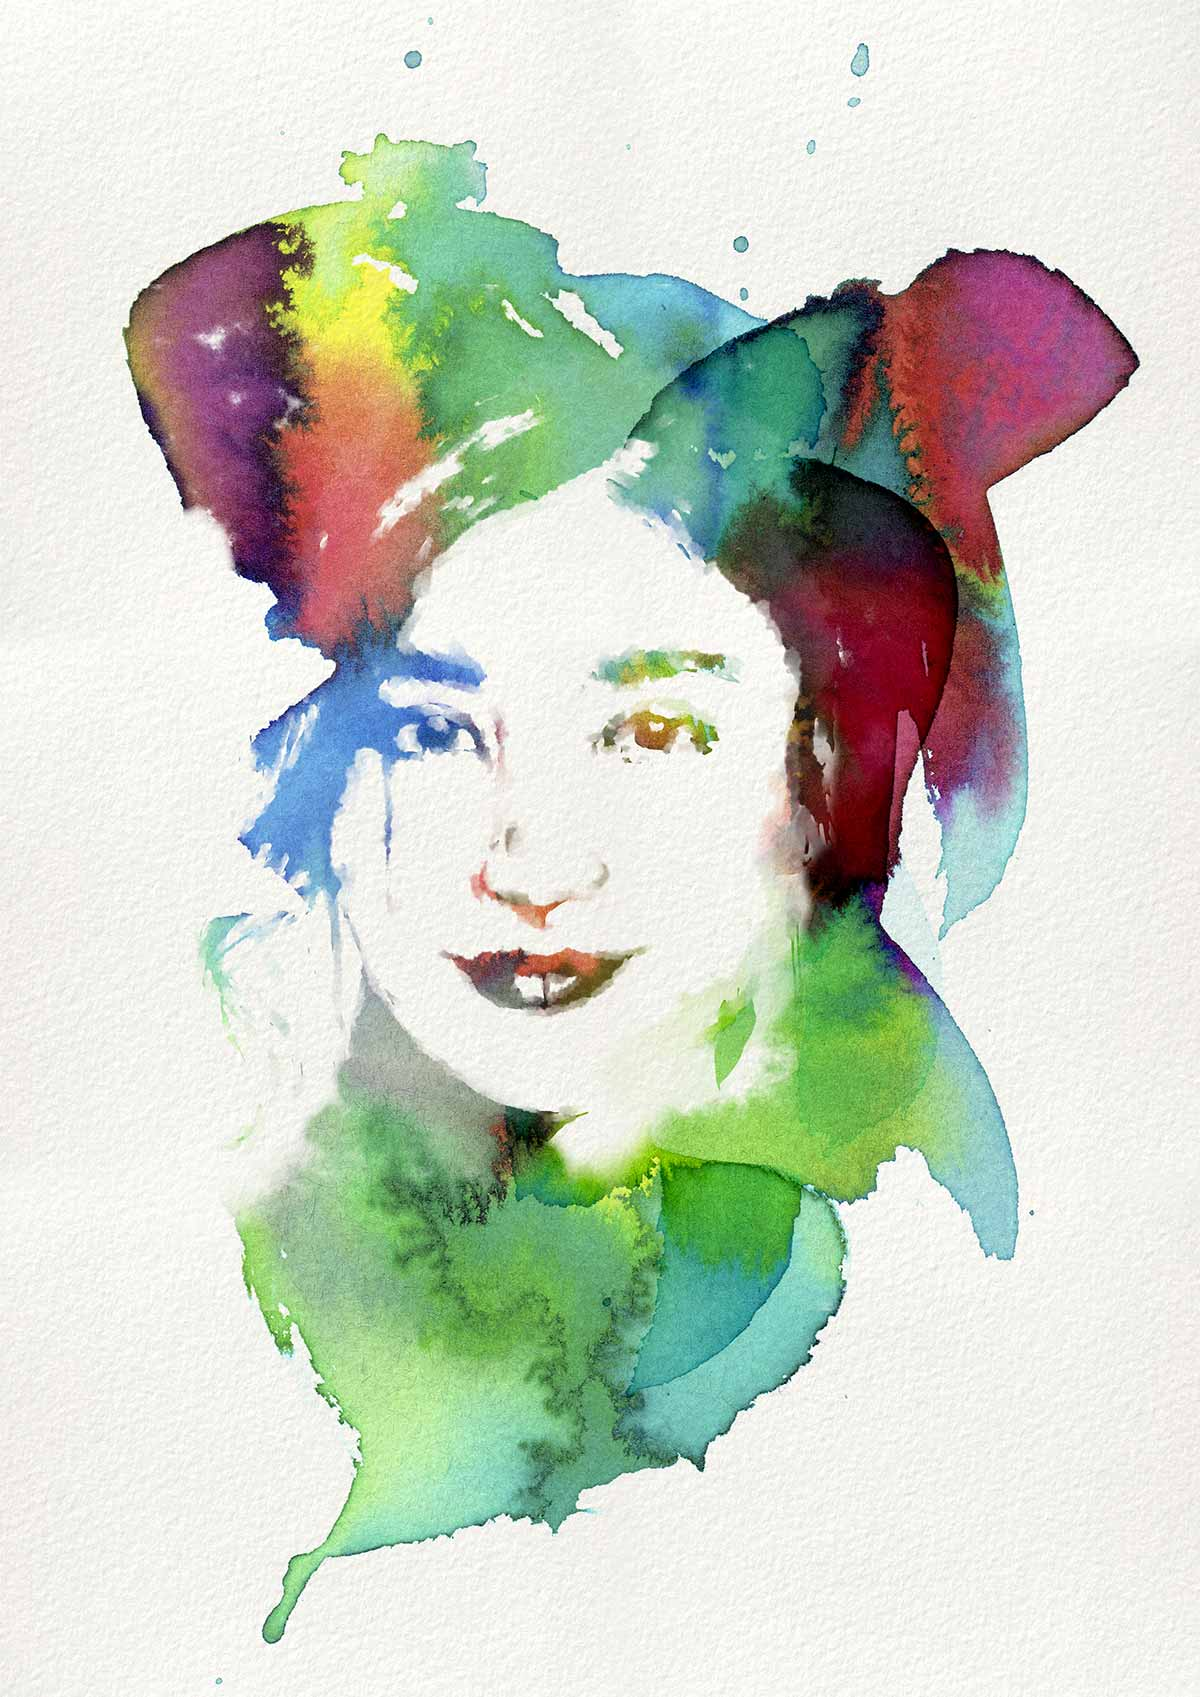 Free Photoshop Brushes of Dynamic Watercolor